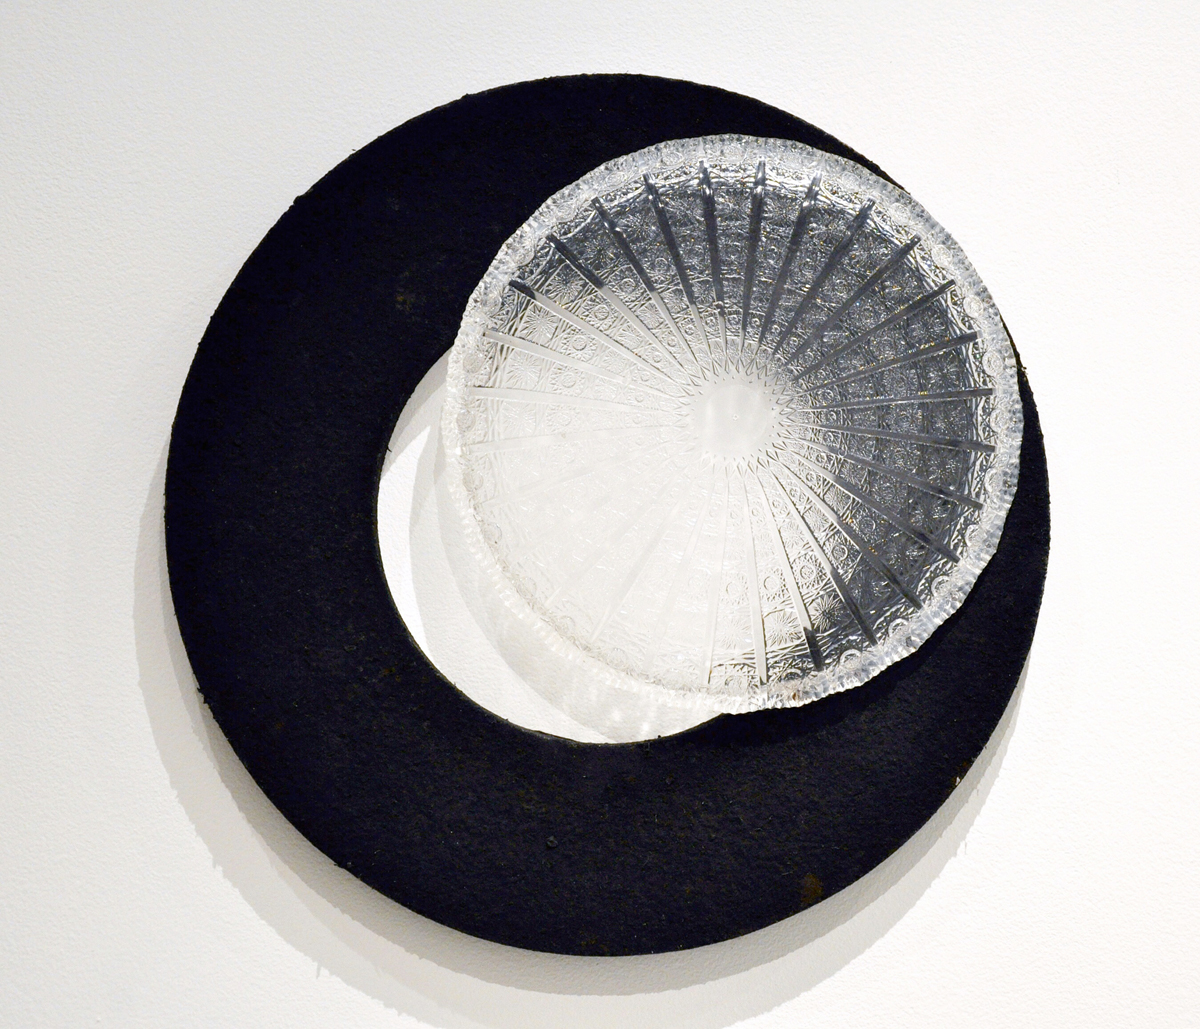 Heather Mekkelson,Waning Gibbous, 2013, recycled plastic, polycarbonate tray, iron filings, silicone, 18 x 18 x 3 inches